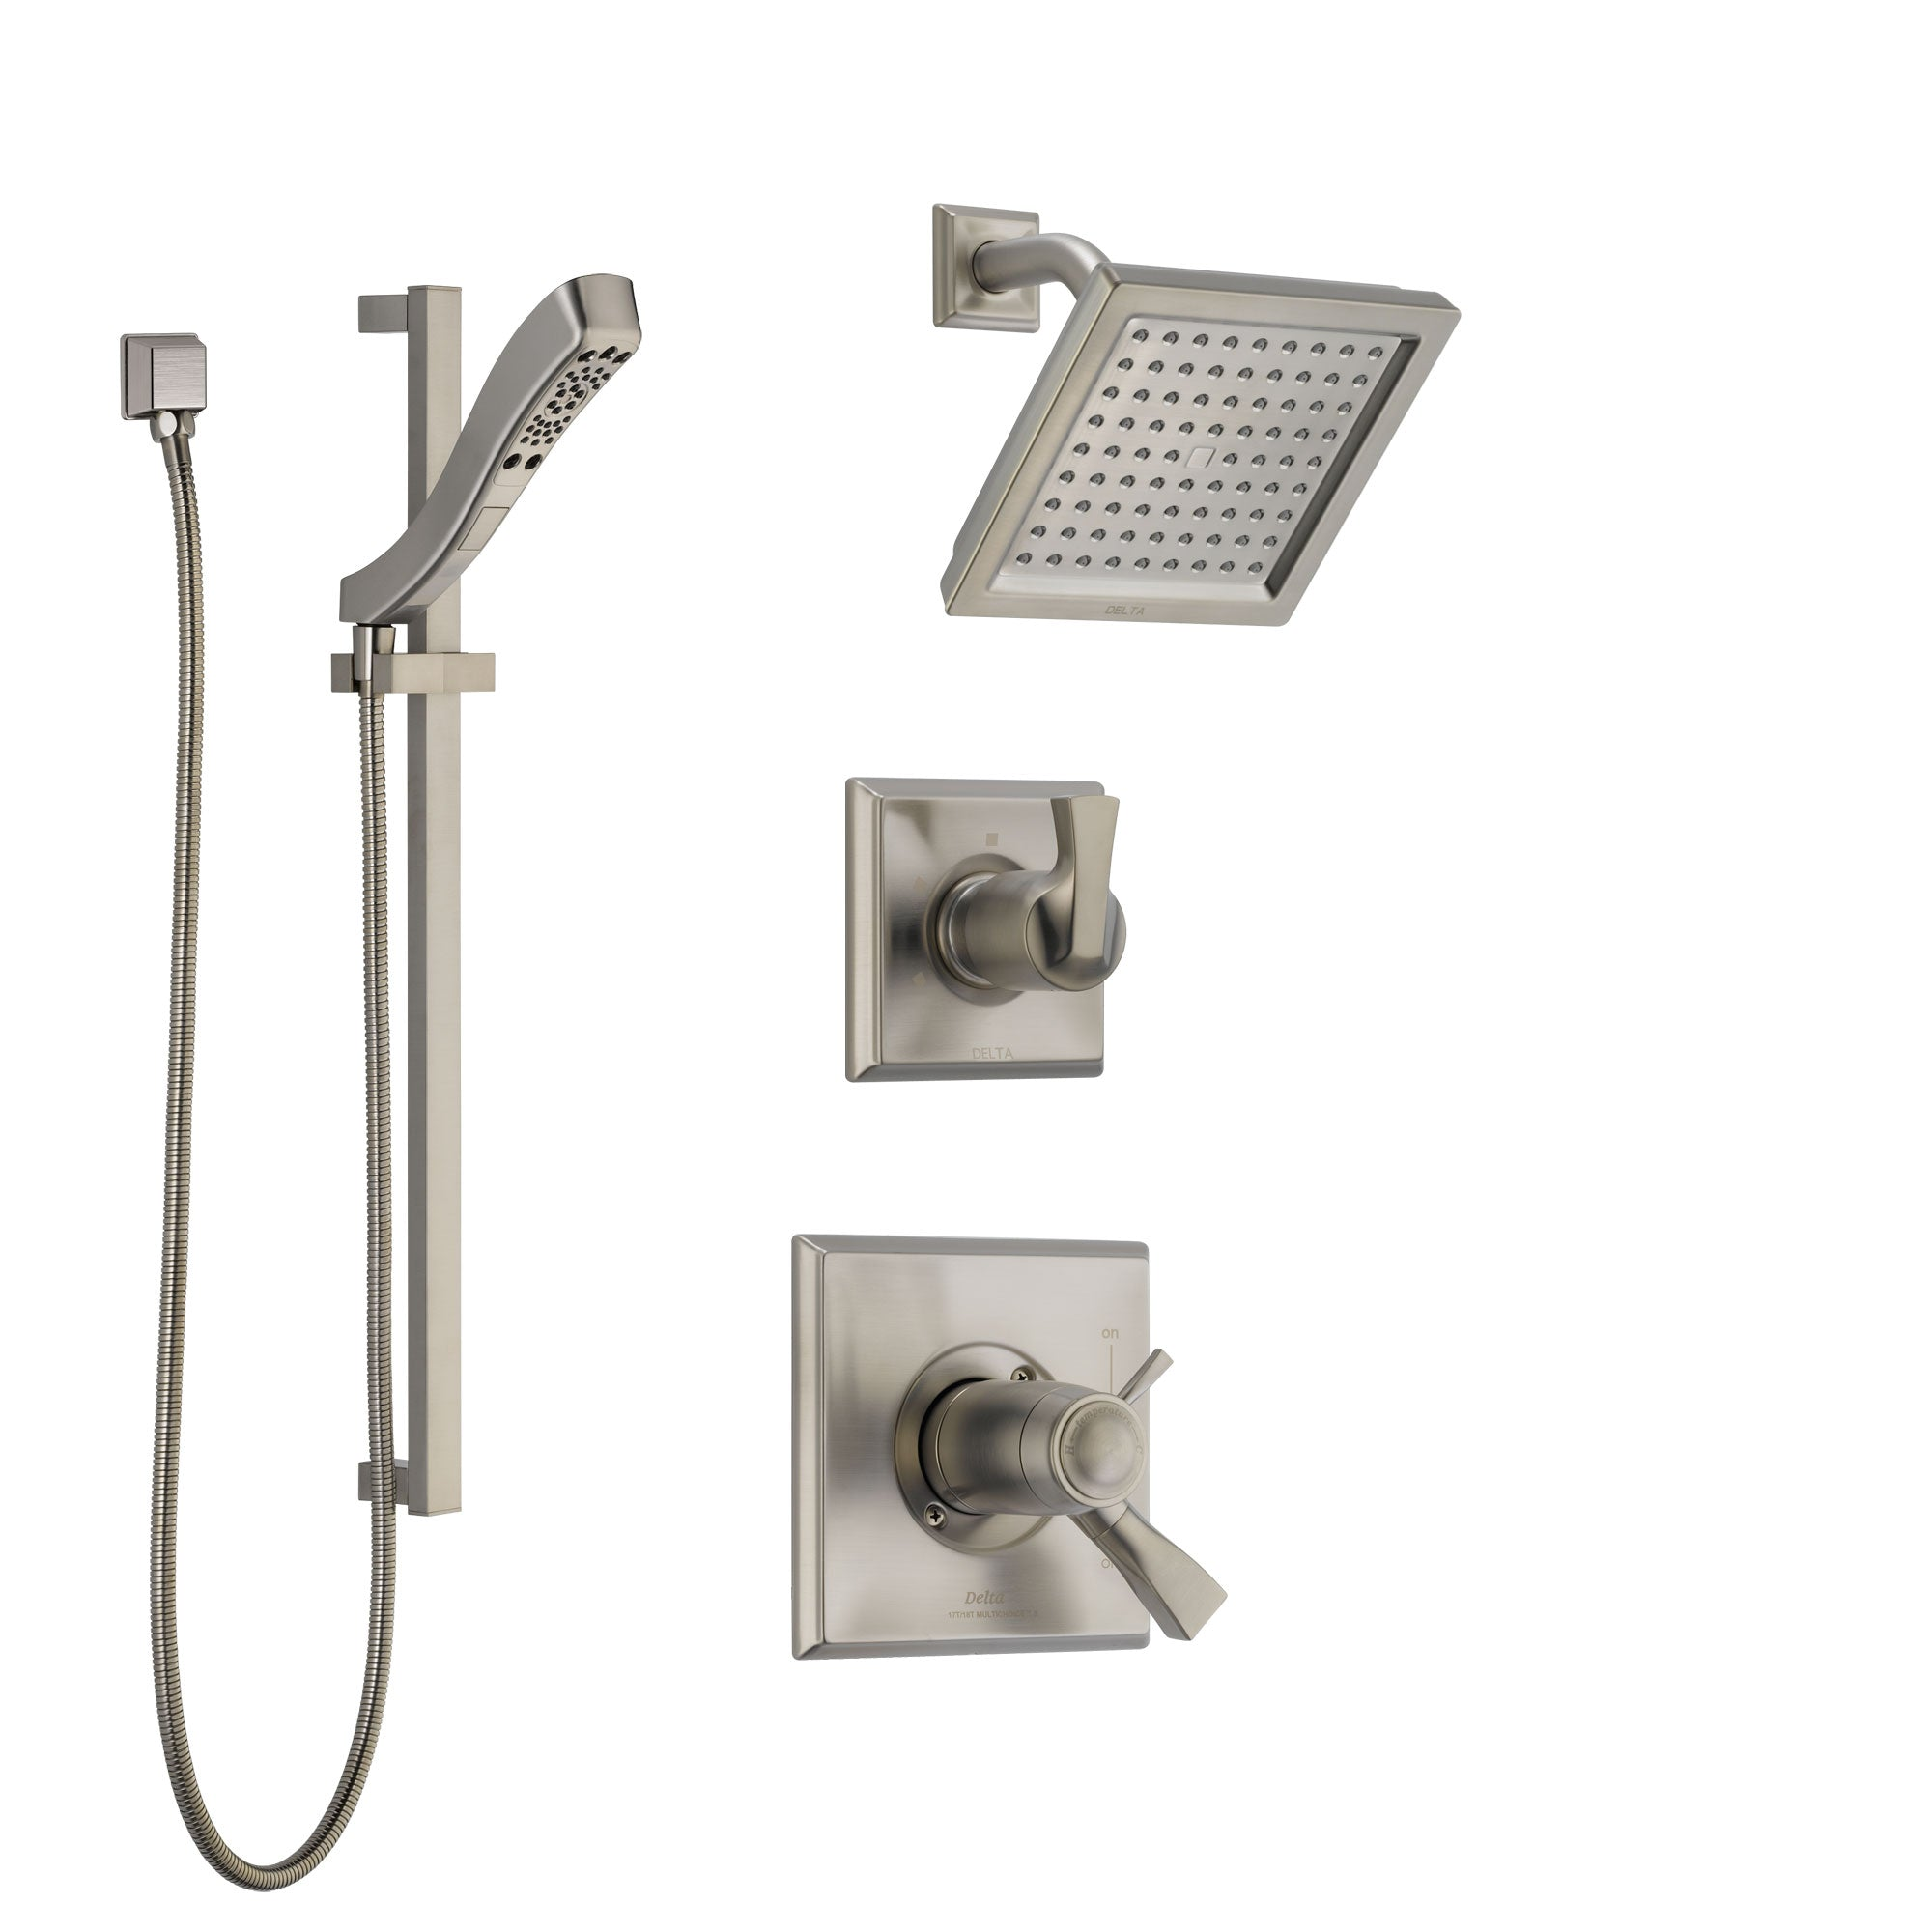 Delta Dryden Dual Thermostatic Control Handle Stainless Steel Finish Shower System, Diverter, Showerhead, and Hand Shower with Slidebar SS17T2511SS4